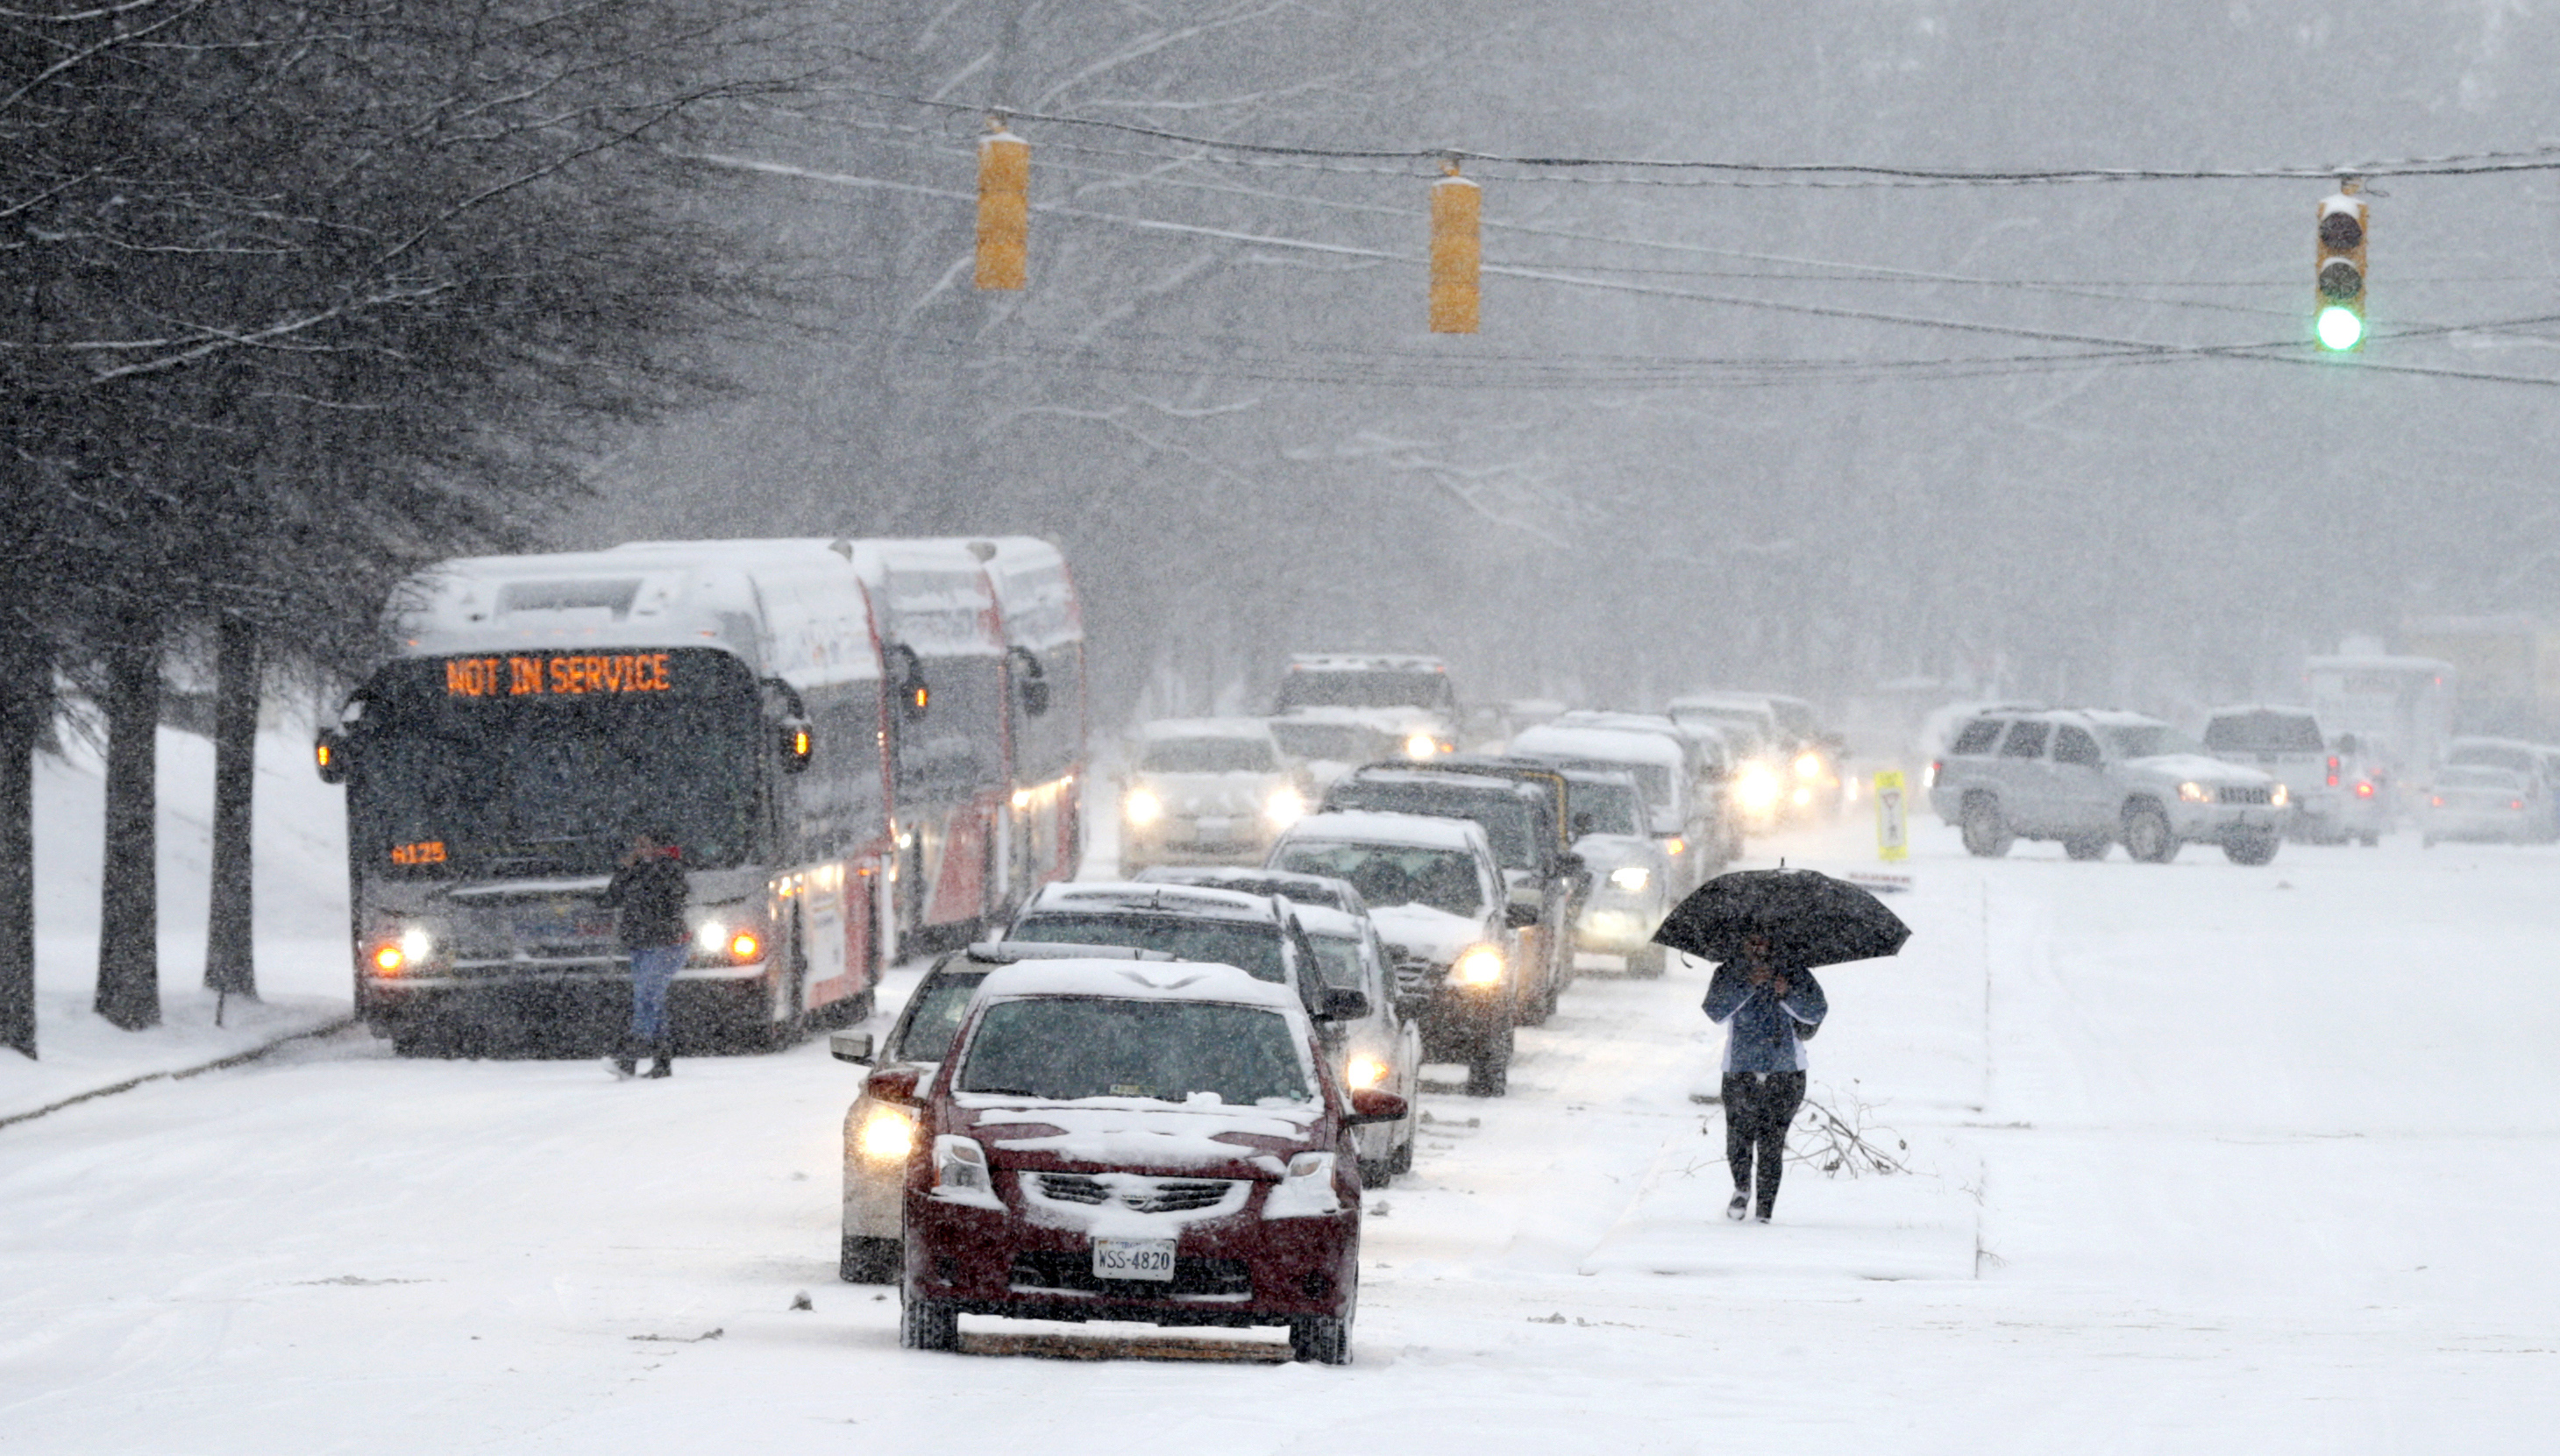 A pedestrian holding an umbrella passes by cars and a bus stopped after police closed off a stretch of Wilson Boulevard due to icy conditions in Arlington, Virginia.